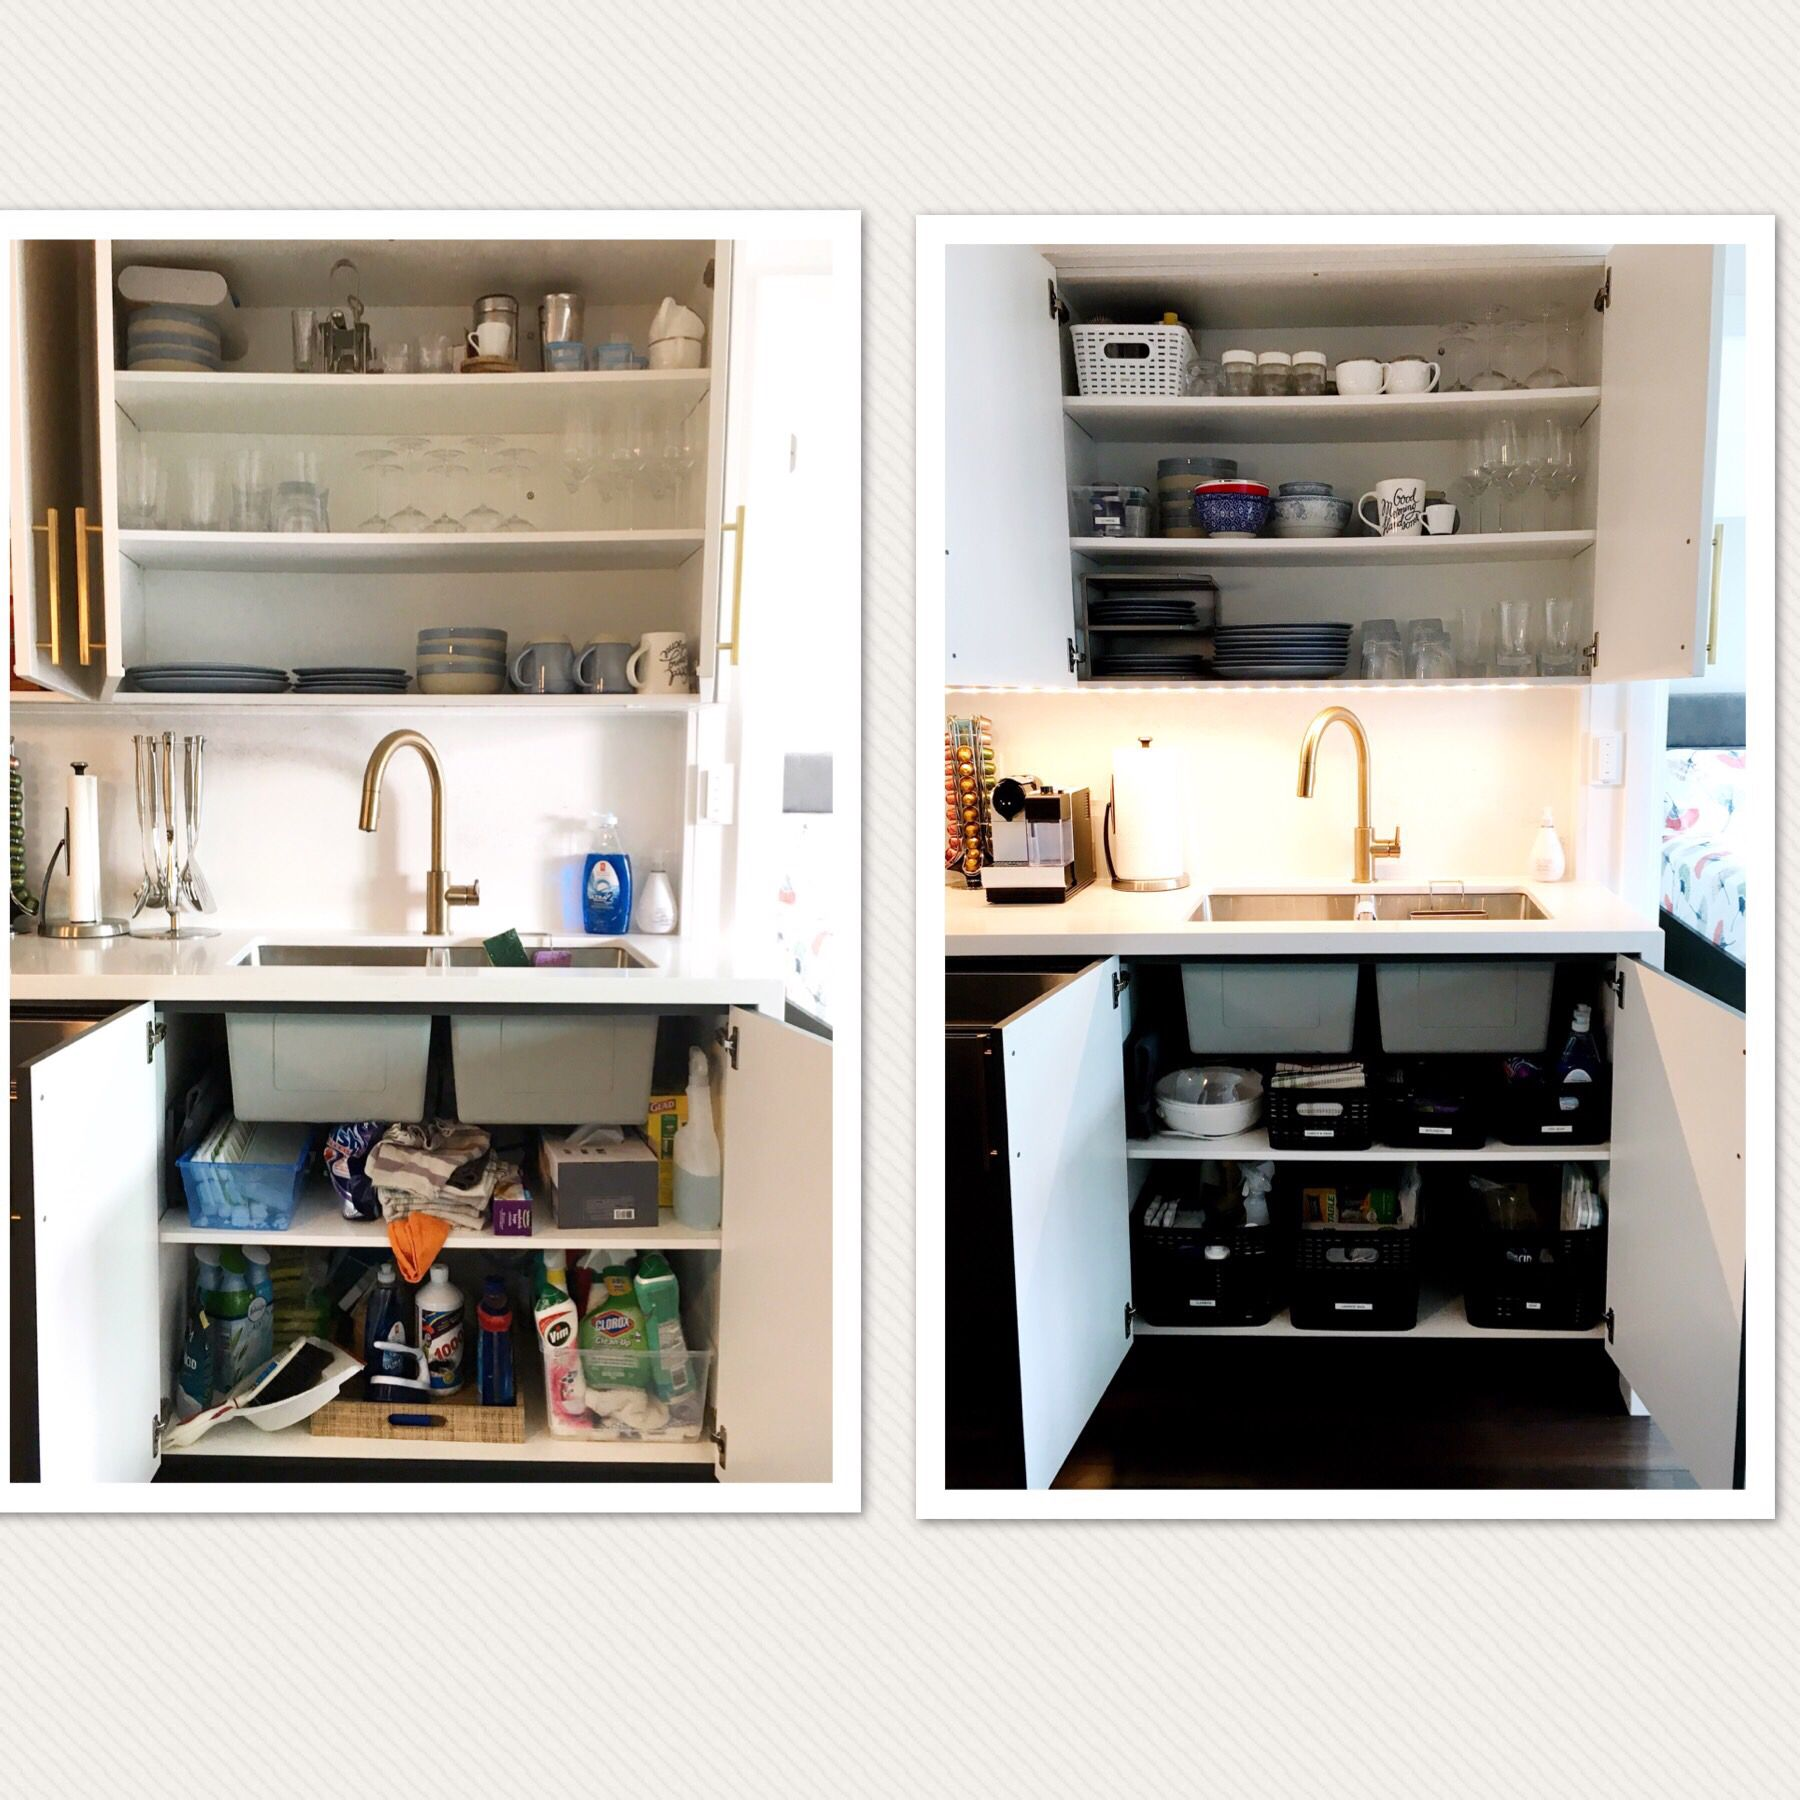 before and after kitchen cabinet organization kitchen cabinet organization organization on kitchen organization before and after id=92353